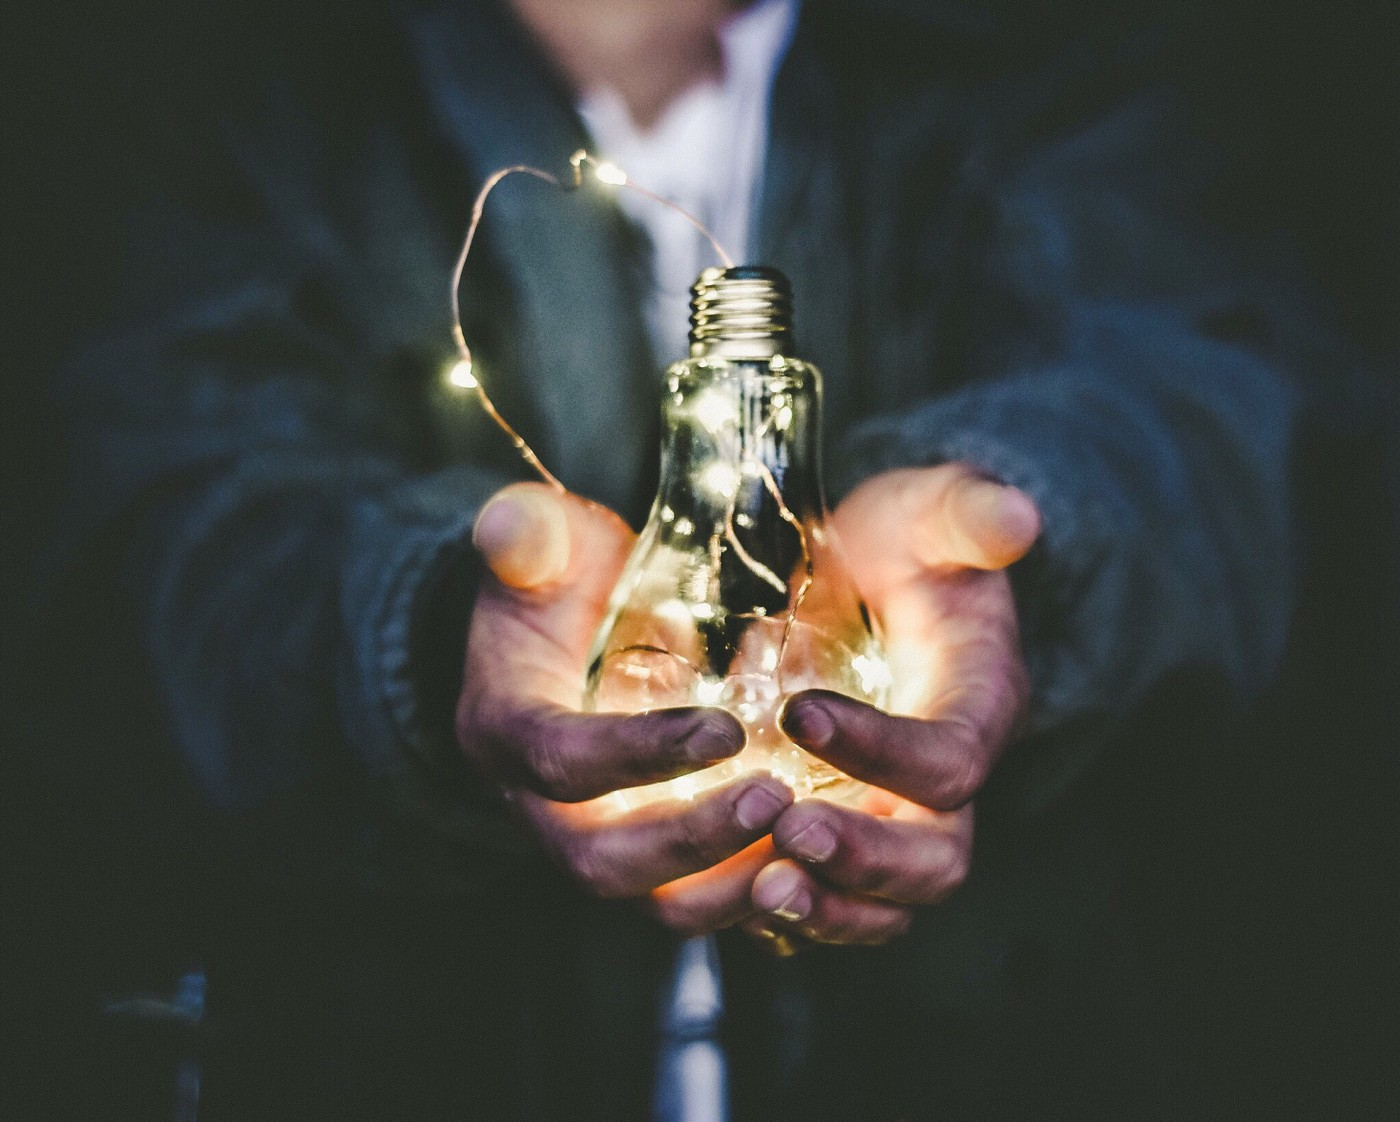 photo of man holding lightbulb in hand; photo on james goydos md 2021 post about mentoring